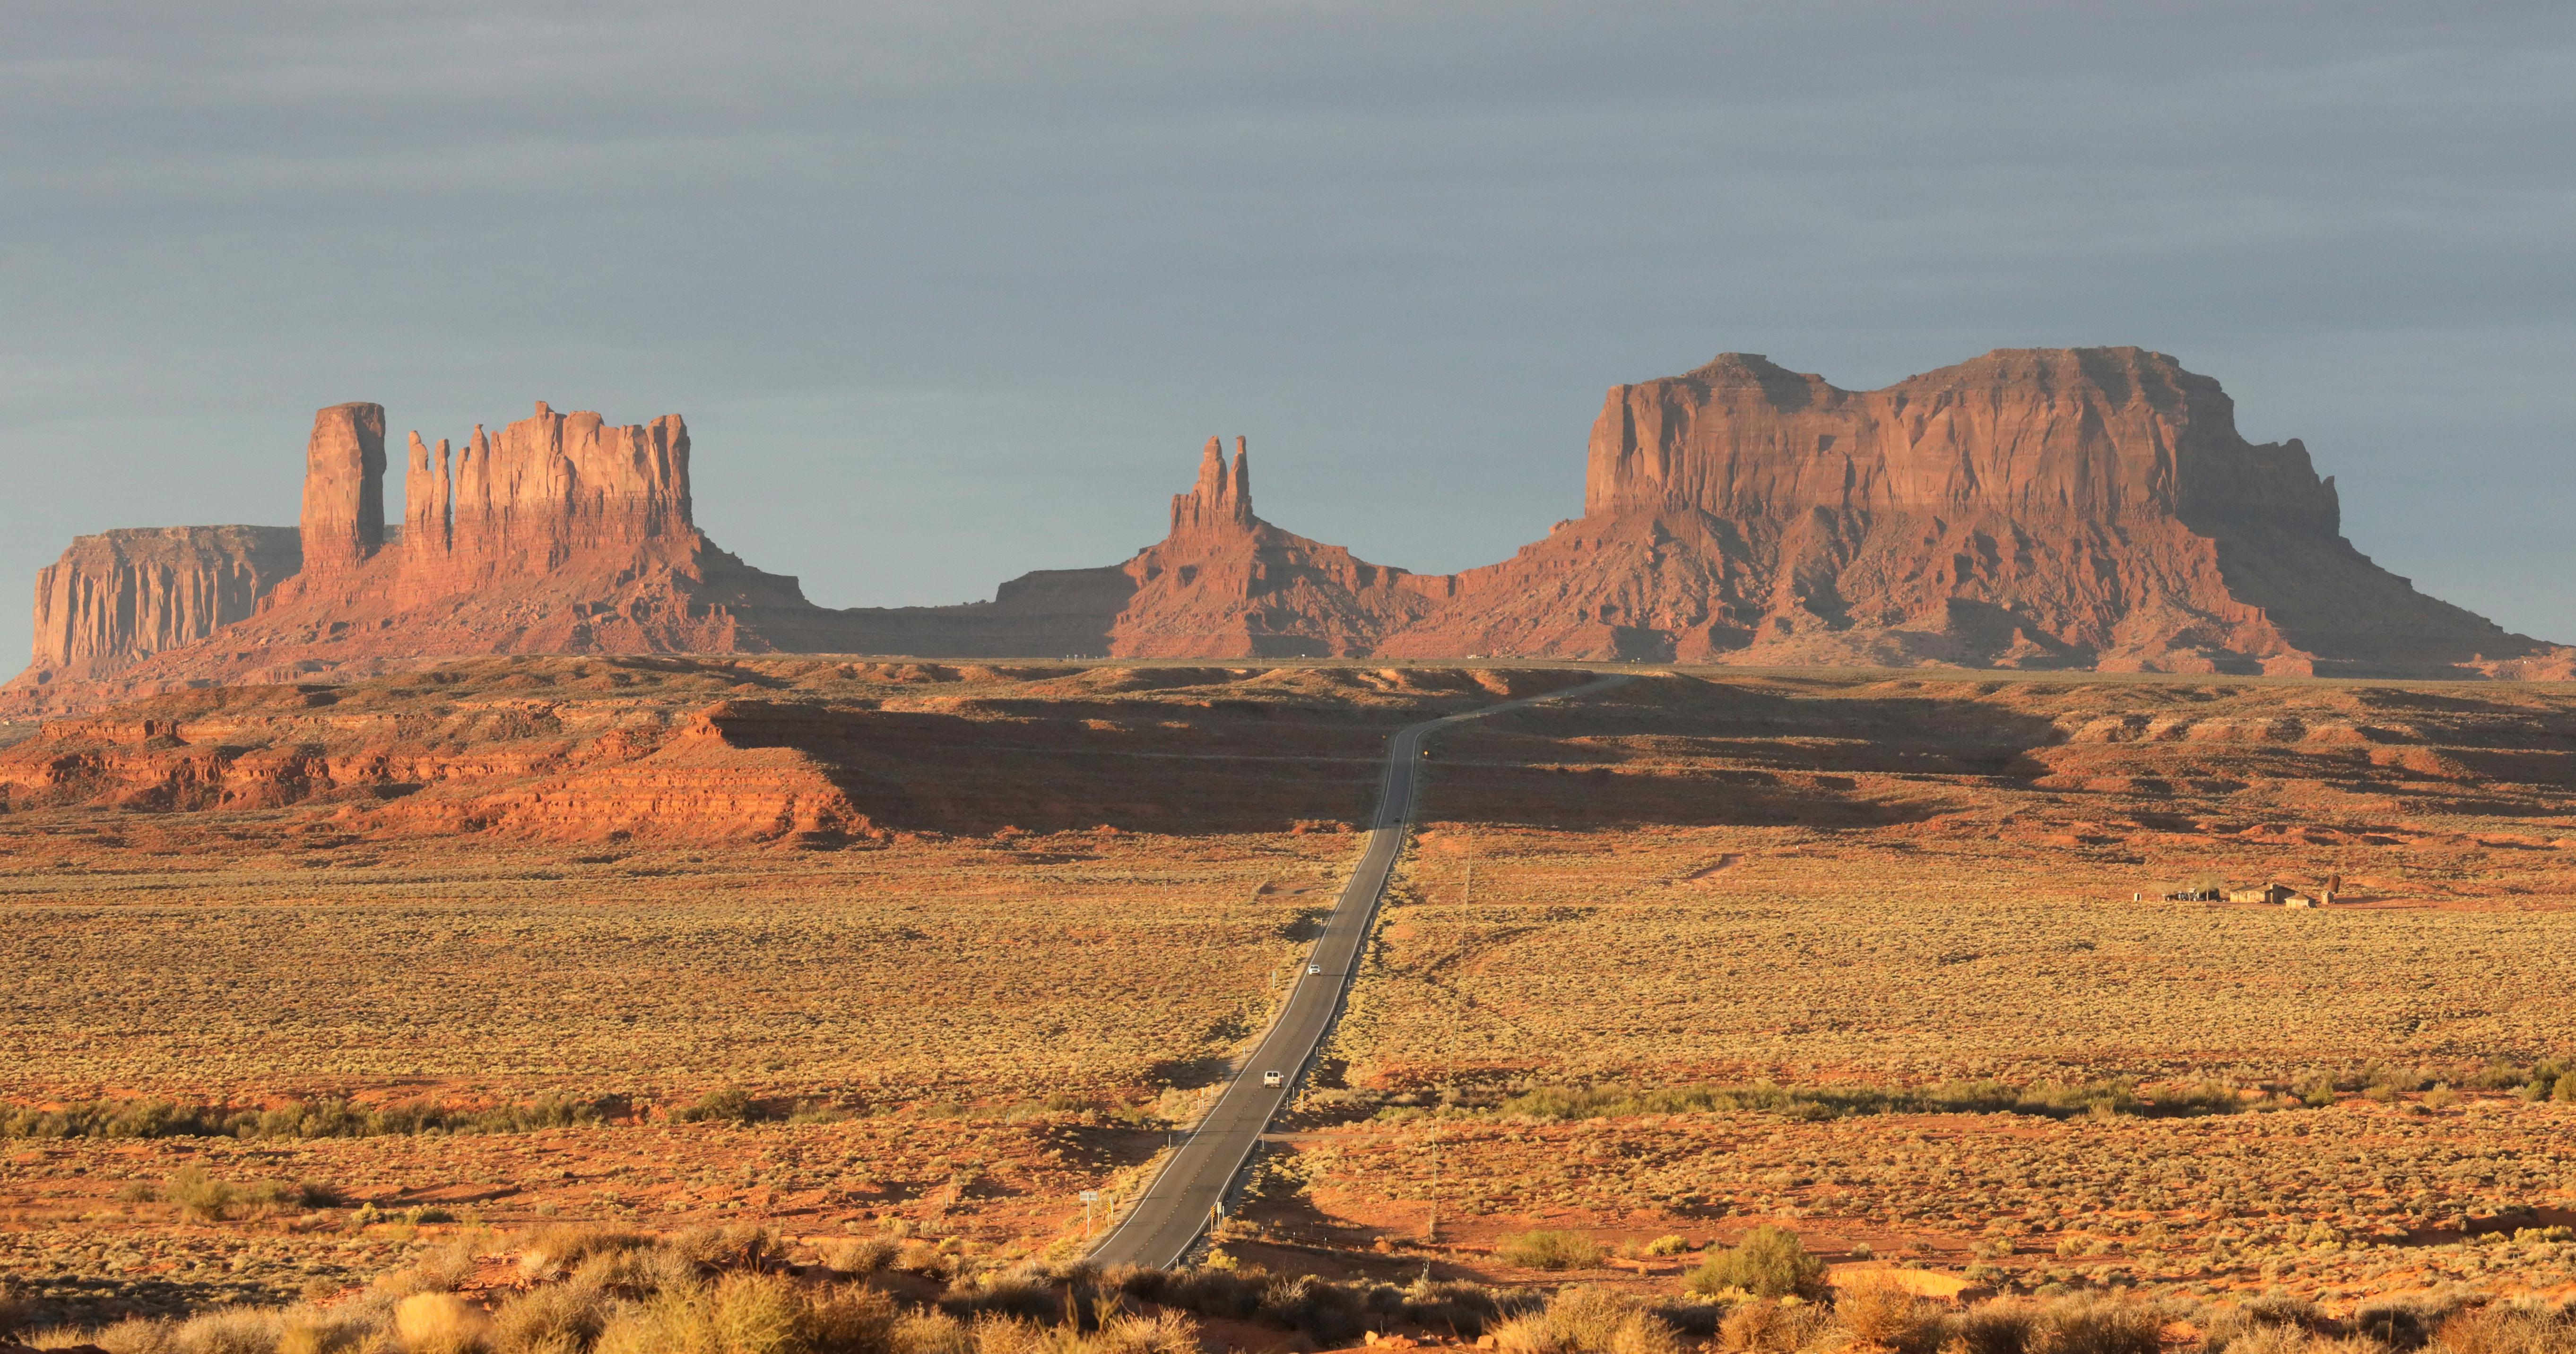 FILE - This Oct. 25, 2018 file photo shows Monument Valley, Utah. In the U.S. Southwest, the leader of the Navajo Nation restricted travel for employees who answer to him and wrote letters to federal officials saying anyone pulled away from duty at federal health care facilities on the vast reservation wouldn't be welcome back for 45 days. Tribes across the country have closed casinos to help slow the spread of the new coronavirus. In the U.S. Southwest, the leader of the Navajo Nation restricted travel for employees who answer to him and wrote letters to federal officials saying anyone pulled away from duty at federal health care facilities on the vast reservation wouldn't be welcome back for 45 days. (AP Photo/Rick Bowmer, File)